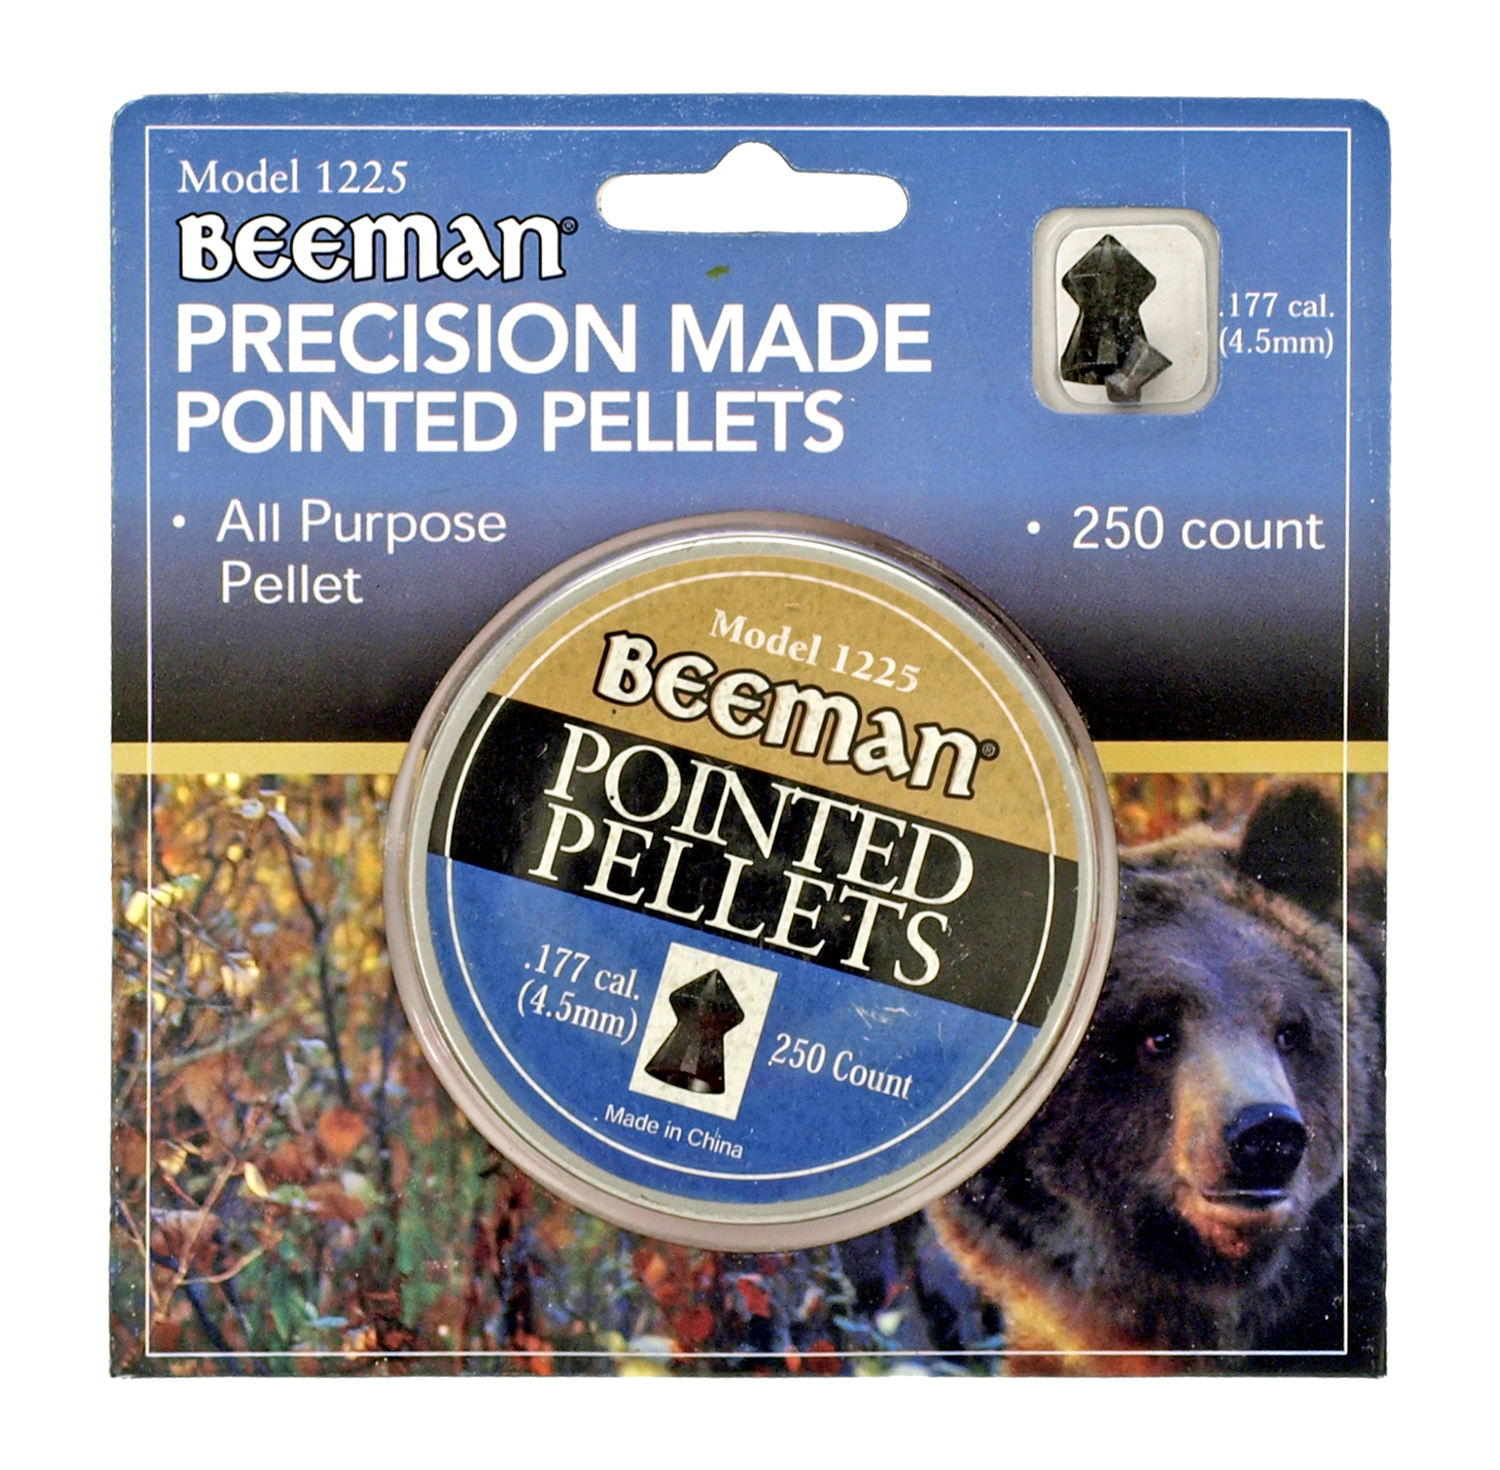 Beeman Precision Made Pointed Pellets - 250 Ct.